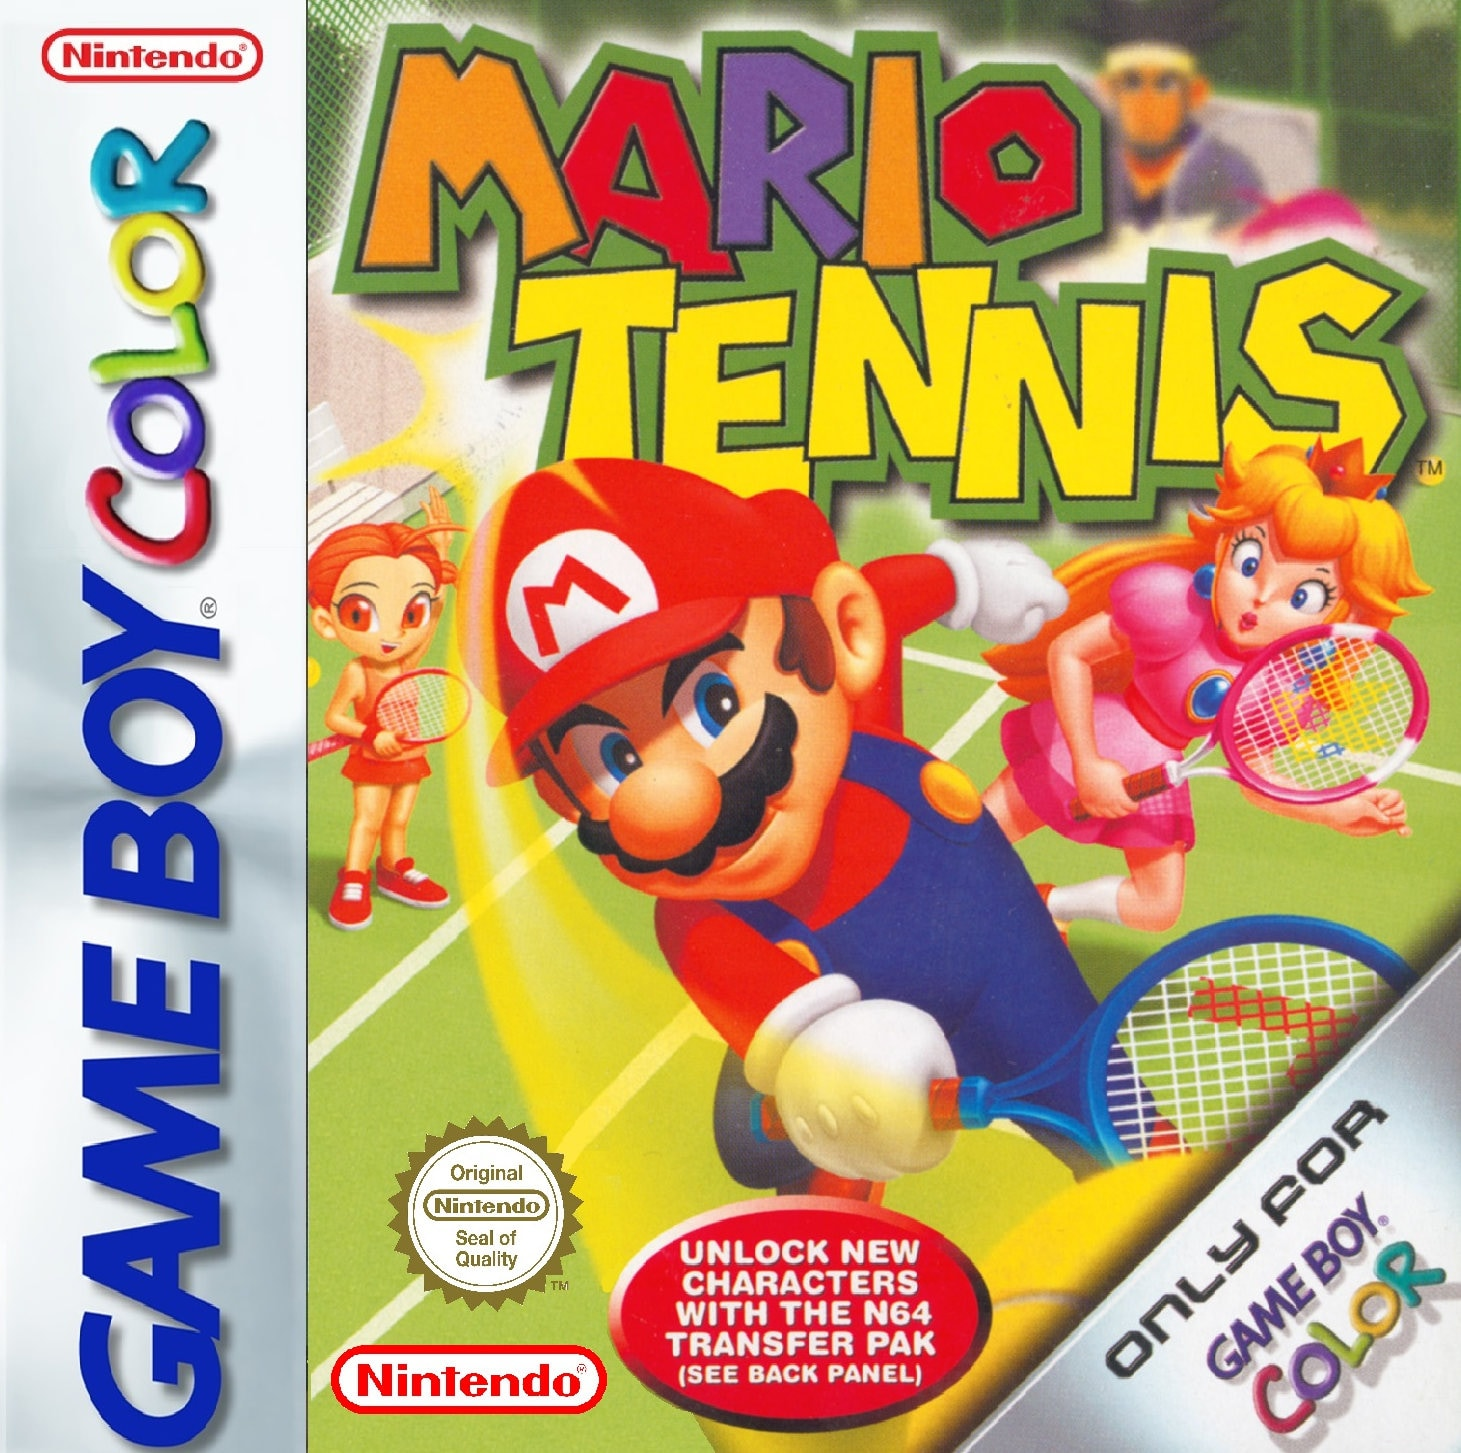 GameBoy Colour Mario Tennis  Repro Box  Insert NO GAME Included